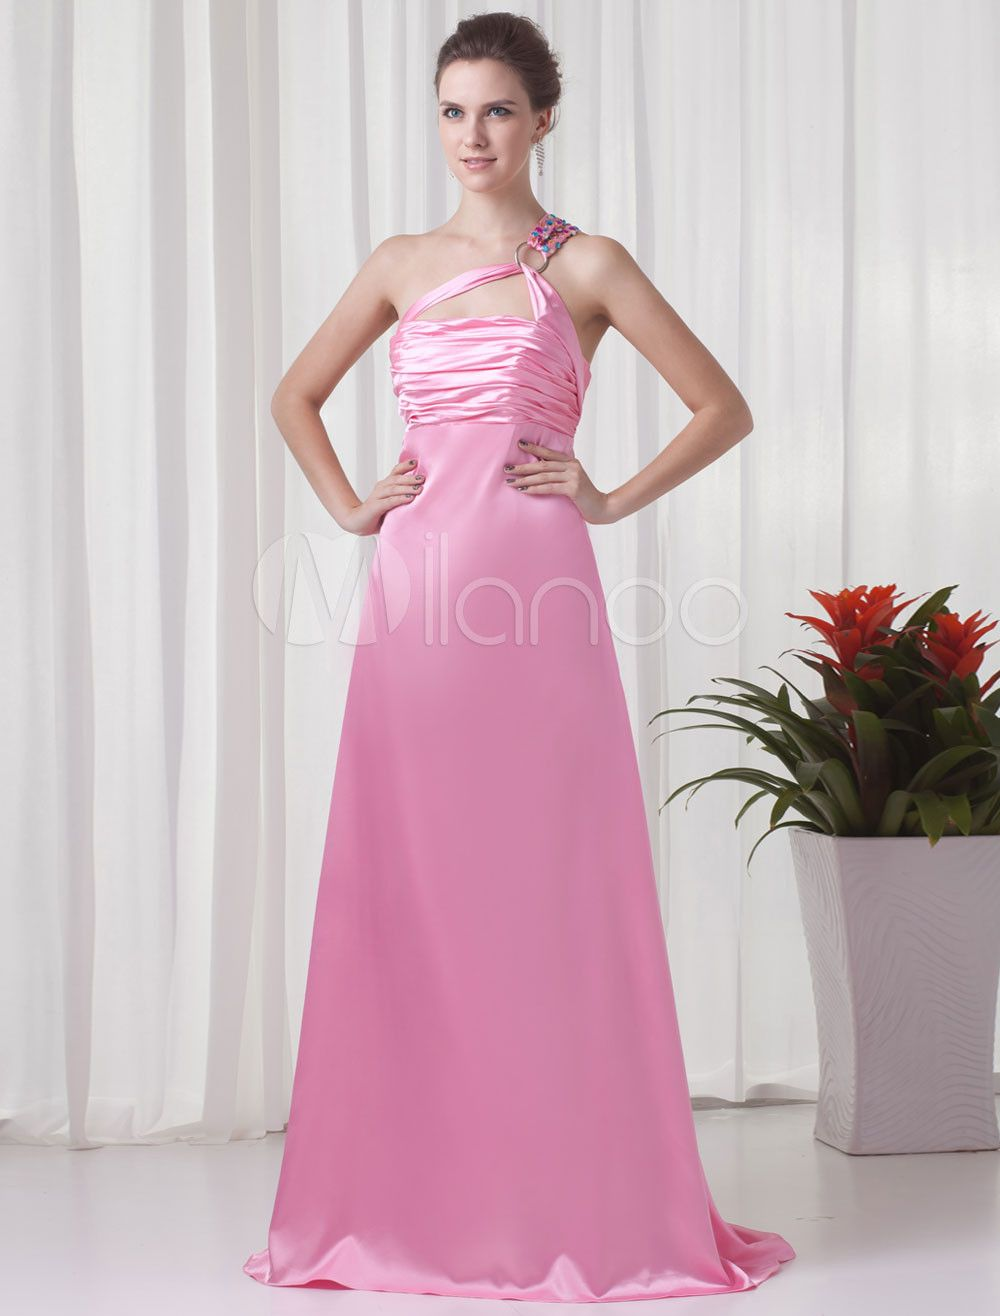 Milanoo.com Ltd #Prom Dresses #Sheath #Pink #One-Shoulder #Prom ...